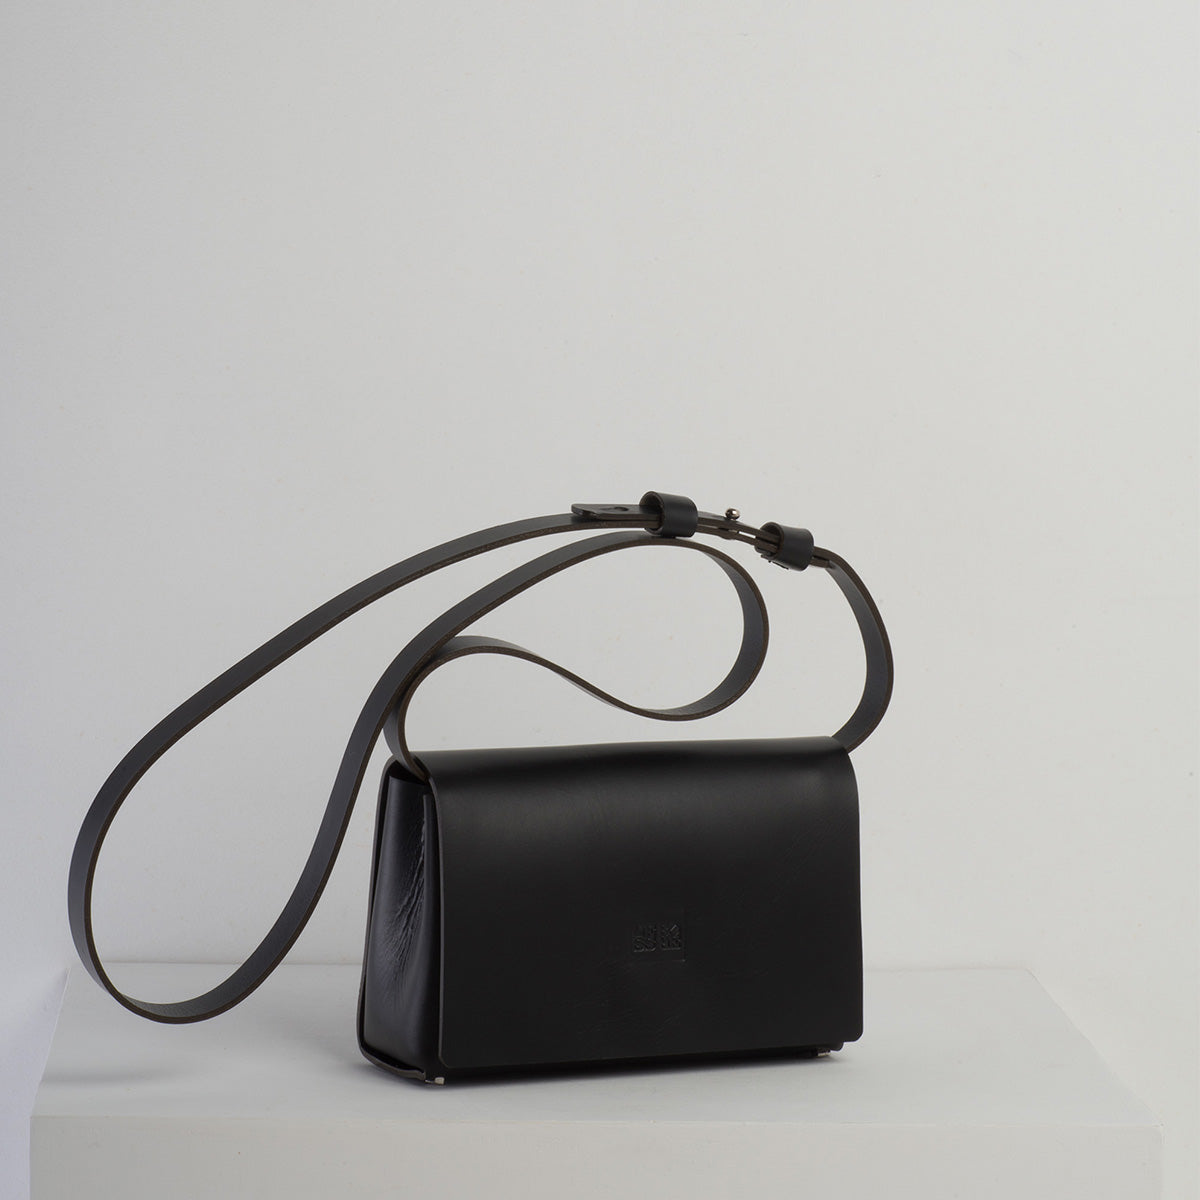 Ane - Less Bore Luxury Handbags - Less Bore - Spanish Brand | Luxury Handbag Brand - Less Bore - Spanish Handbag - Hand Stitched | Ecological Handbag Brand | Beautiful Handbag - Less Bore - Ane - Spanish Design - Concept Store - Black